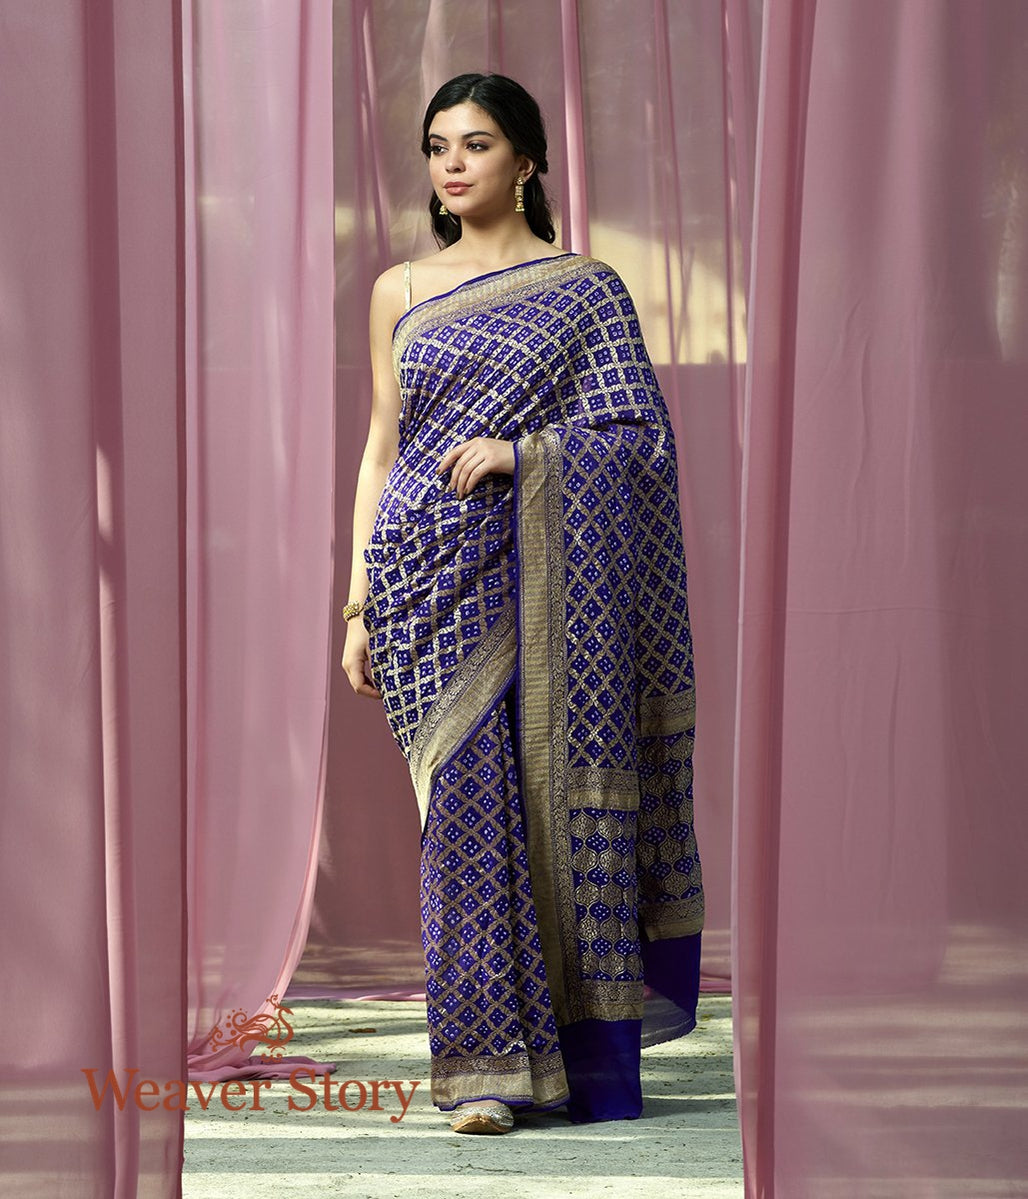 Handwoven Deep Purple Banarasi Bandhej Saree